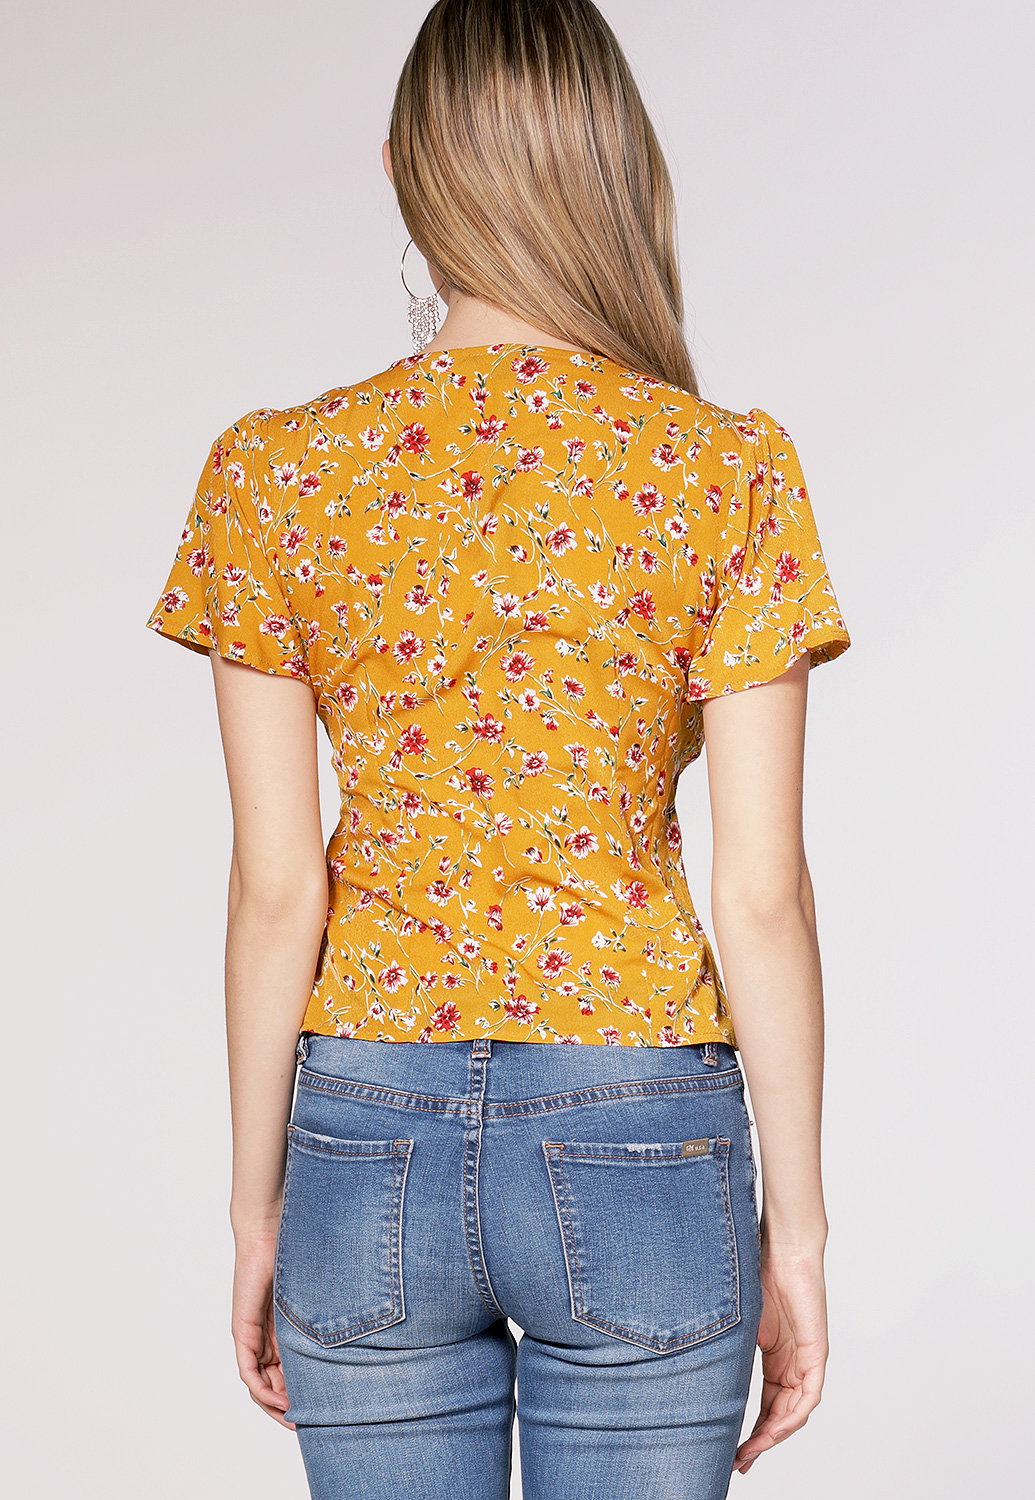 Floral Button Up Top